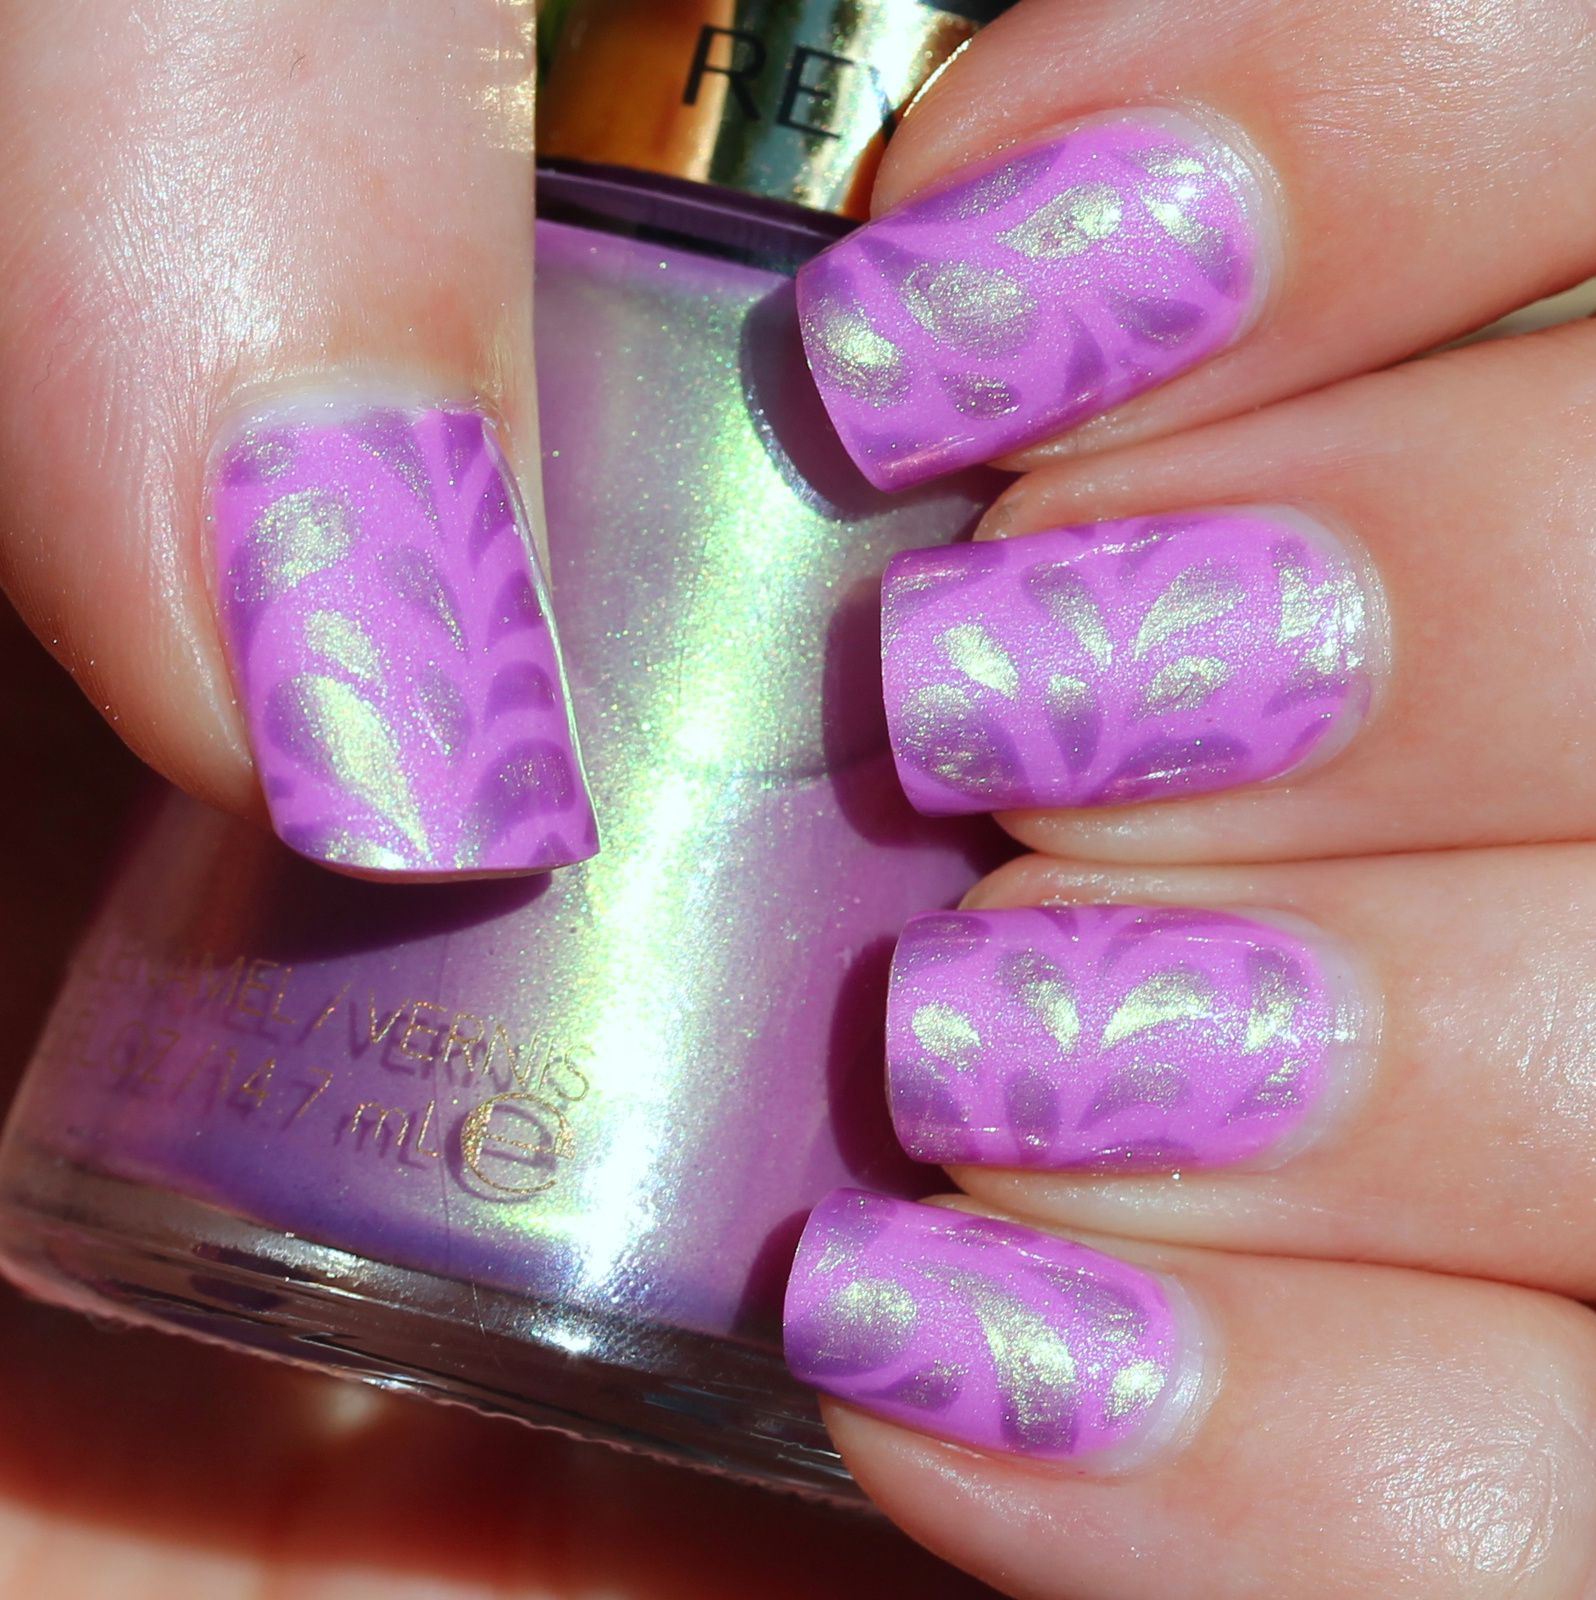 Sally Hansen Complete Care 4-in-1 Extra Moisturizing Nail Treatment / Native War Paints Blueberry Yogurt / Sally Hansen Miracle Gel Top Coat / Revlon Daydreamer & Stick It Teardrop Nail Vinyls /  HK Girl Top Coat